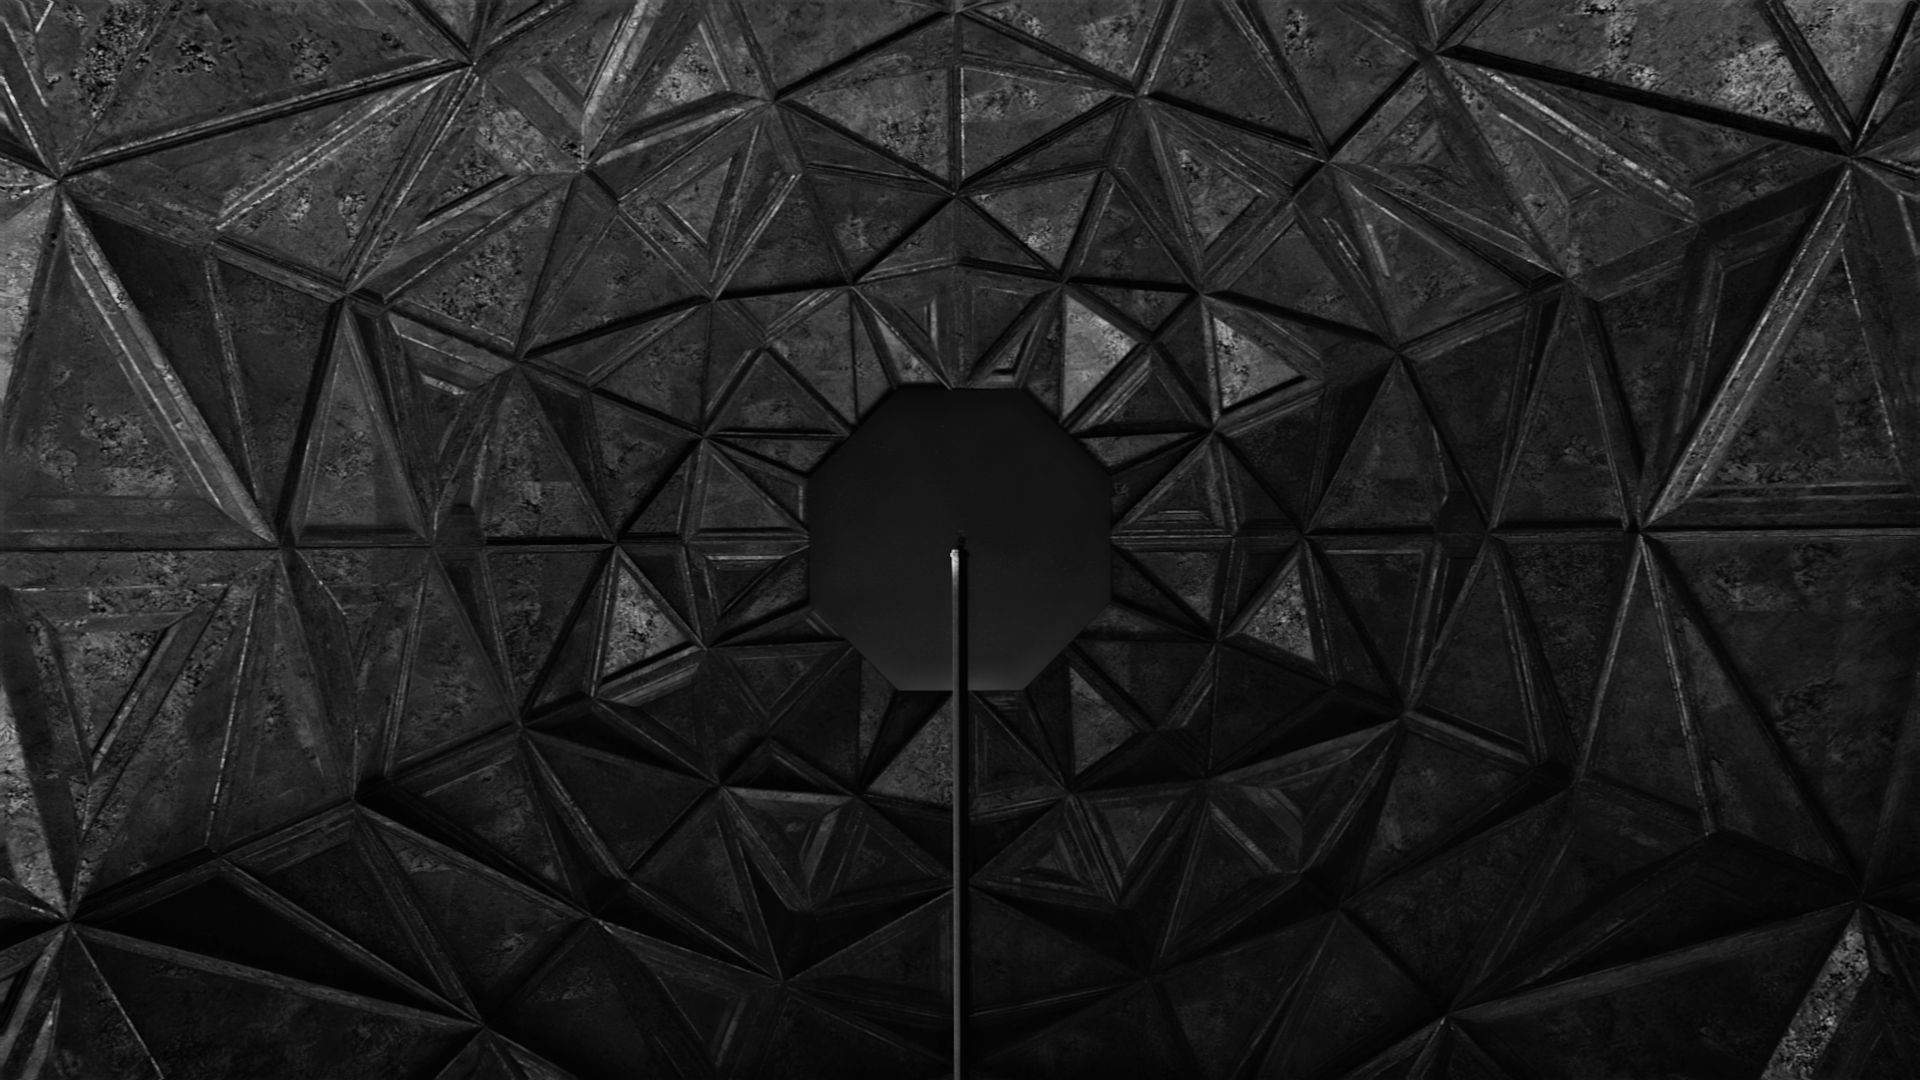 Abstract 3D environment with geometric patterns and dark concrete materials